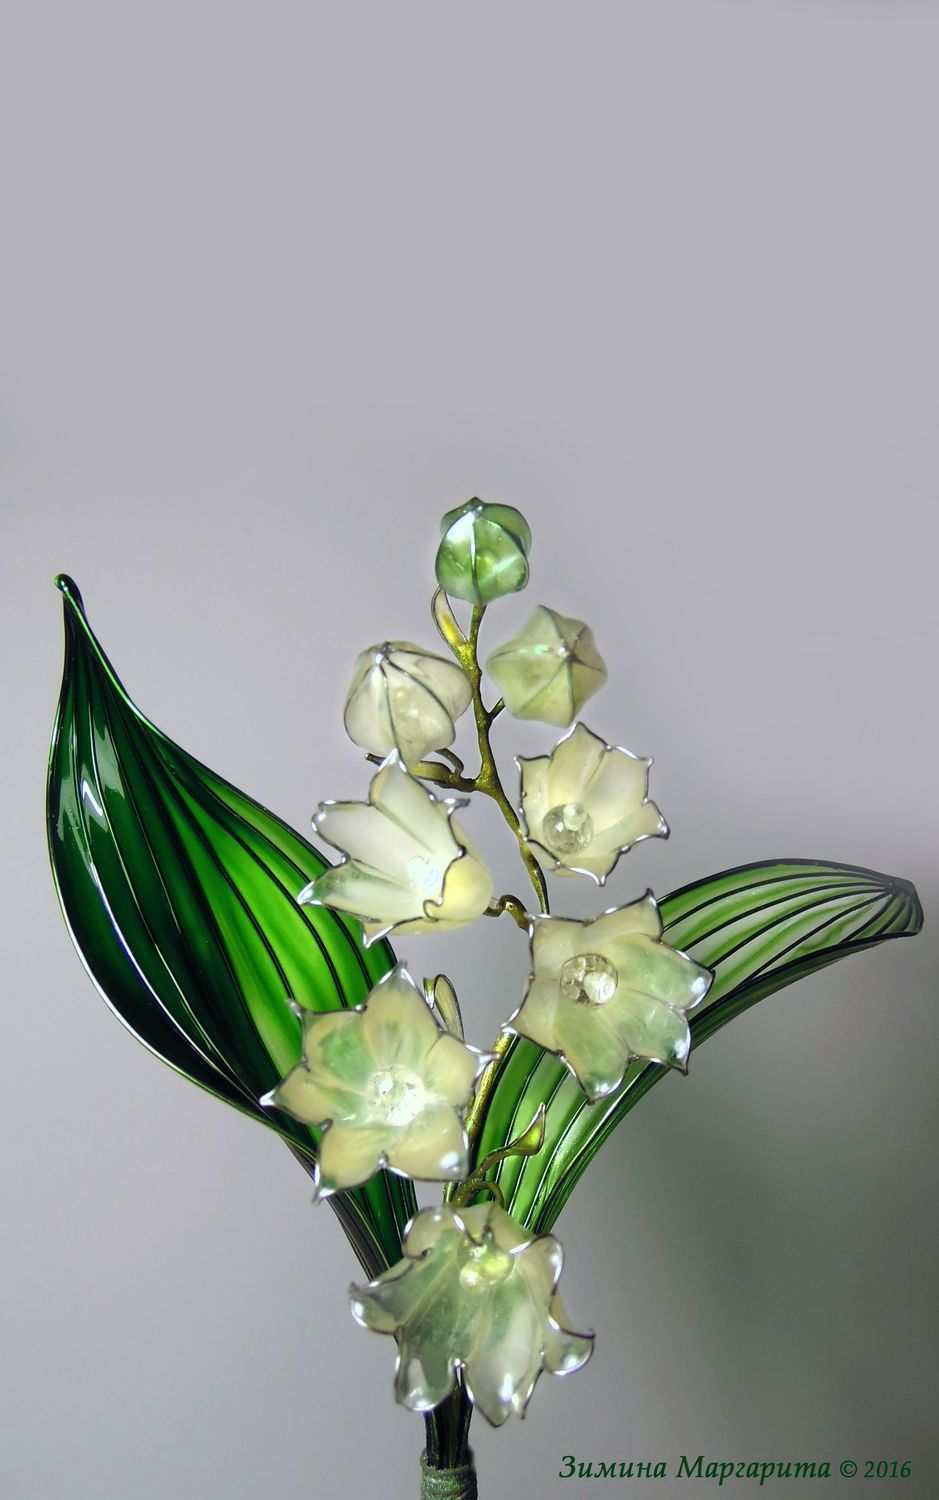 convallaria lily of the valley wedding festive convallaria lily of the valley wedding festive celebratory hair accessories and brooches by margarita zimina izmirmasajfo